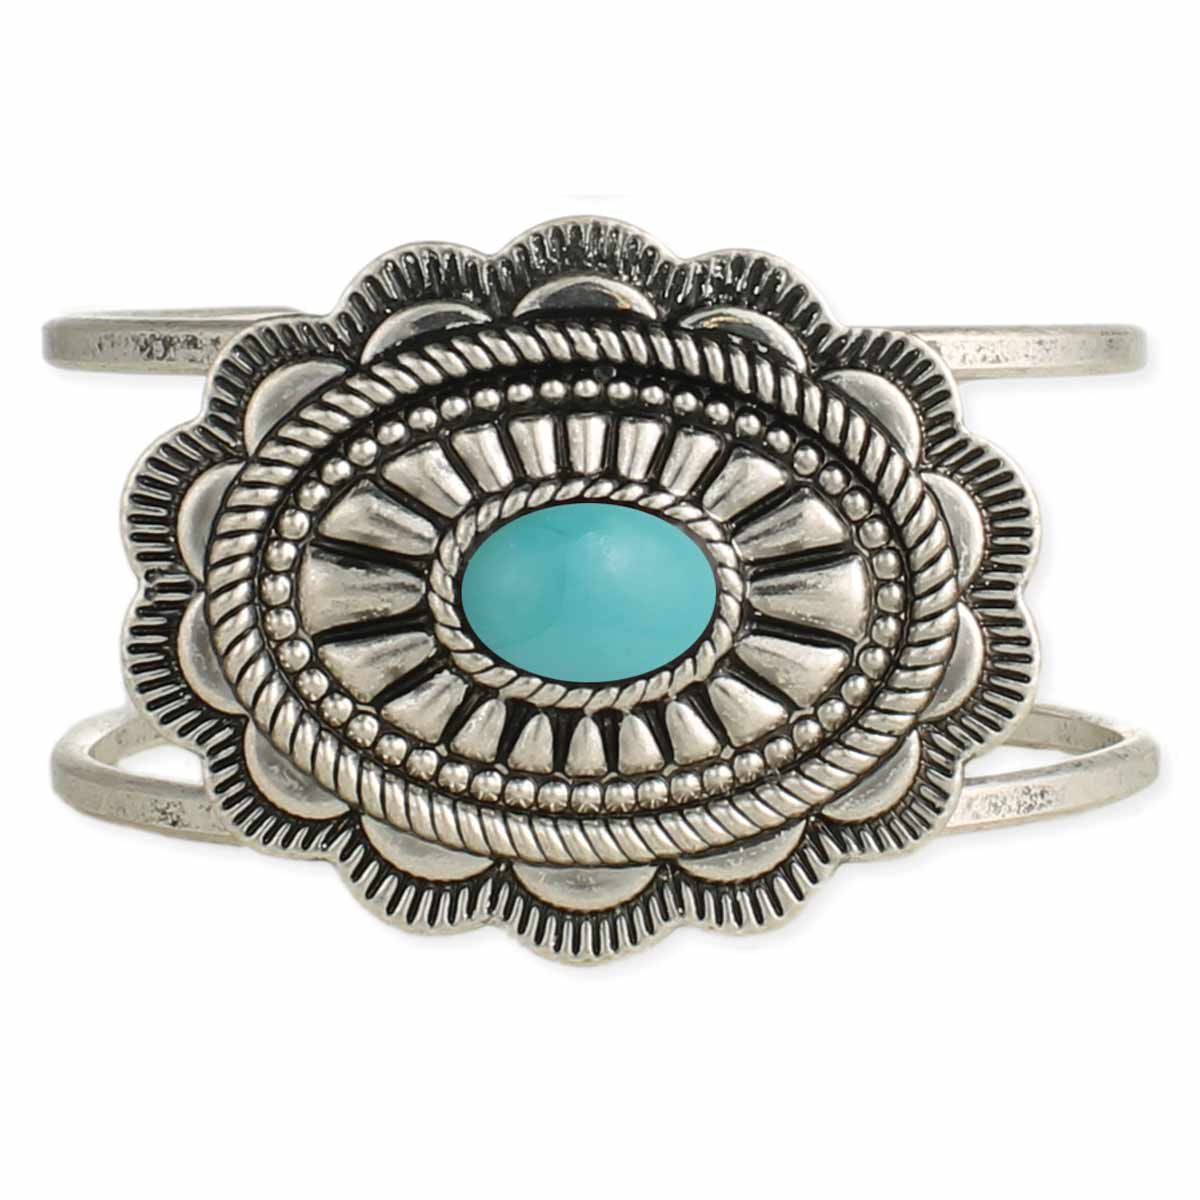 Silver concho Turquoise Stone Cuff Bracelet